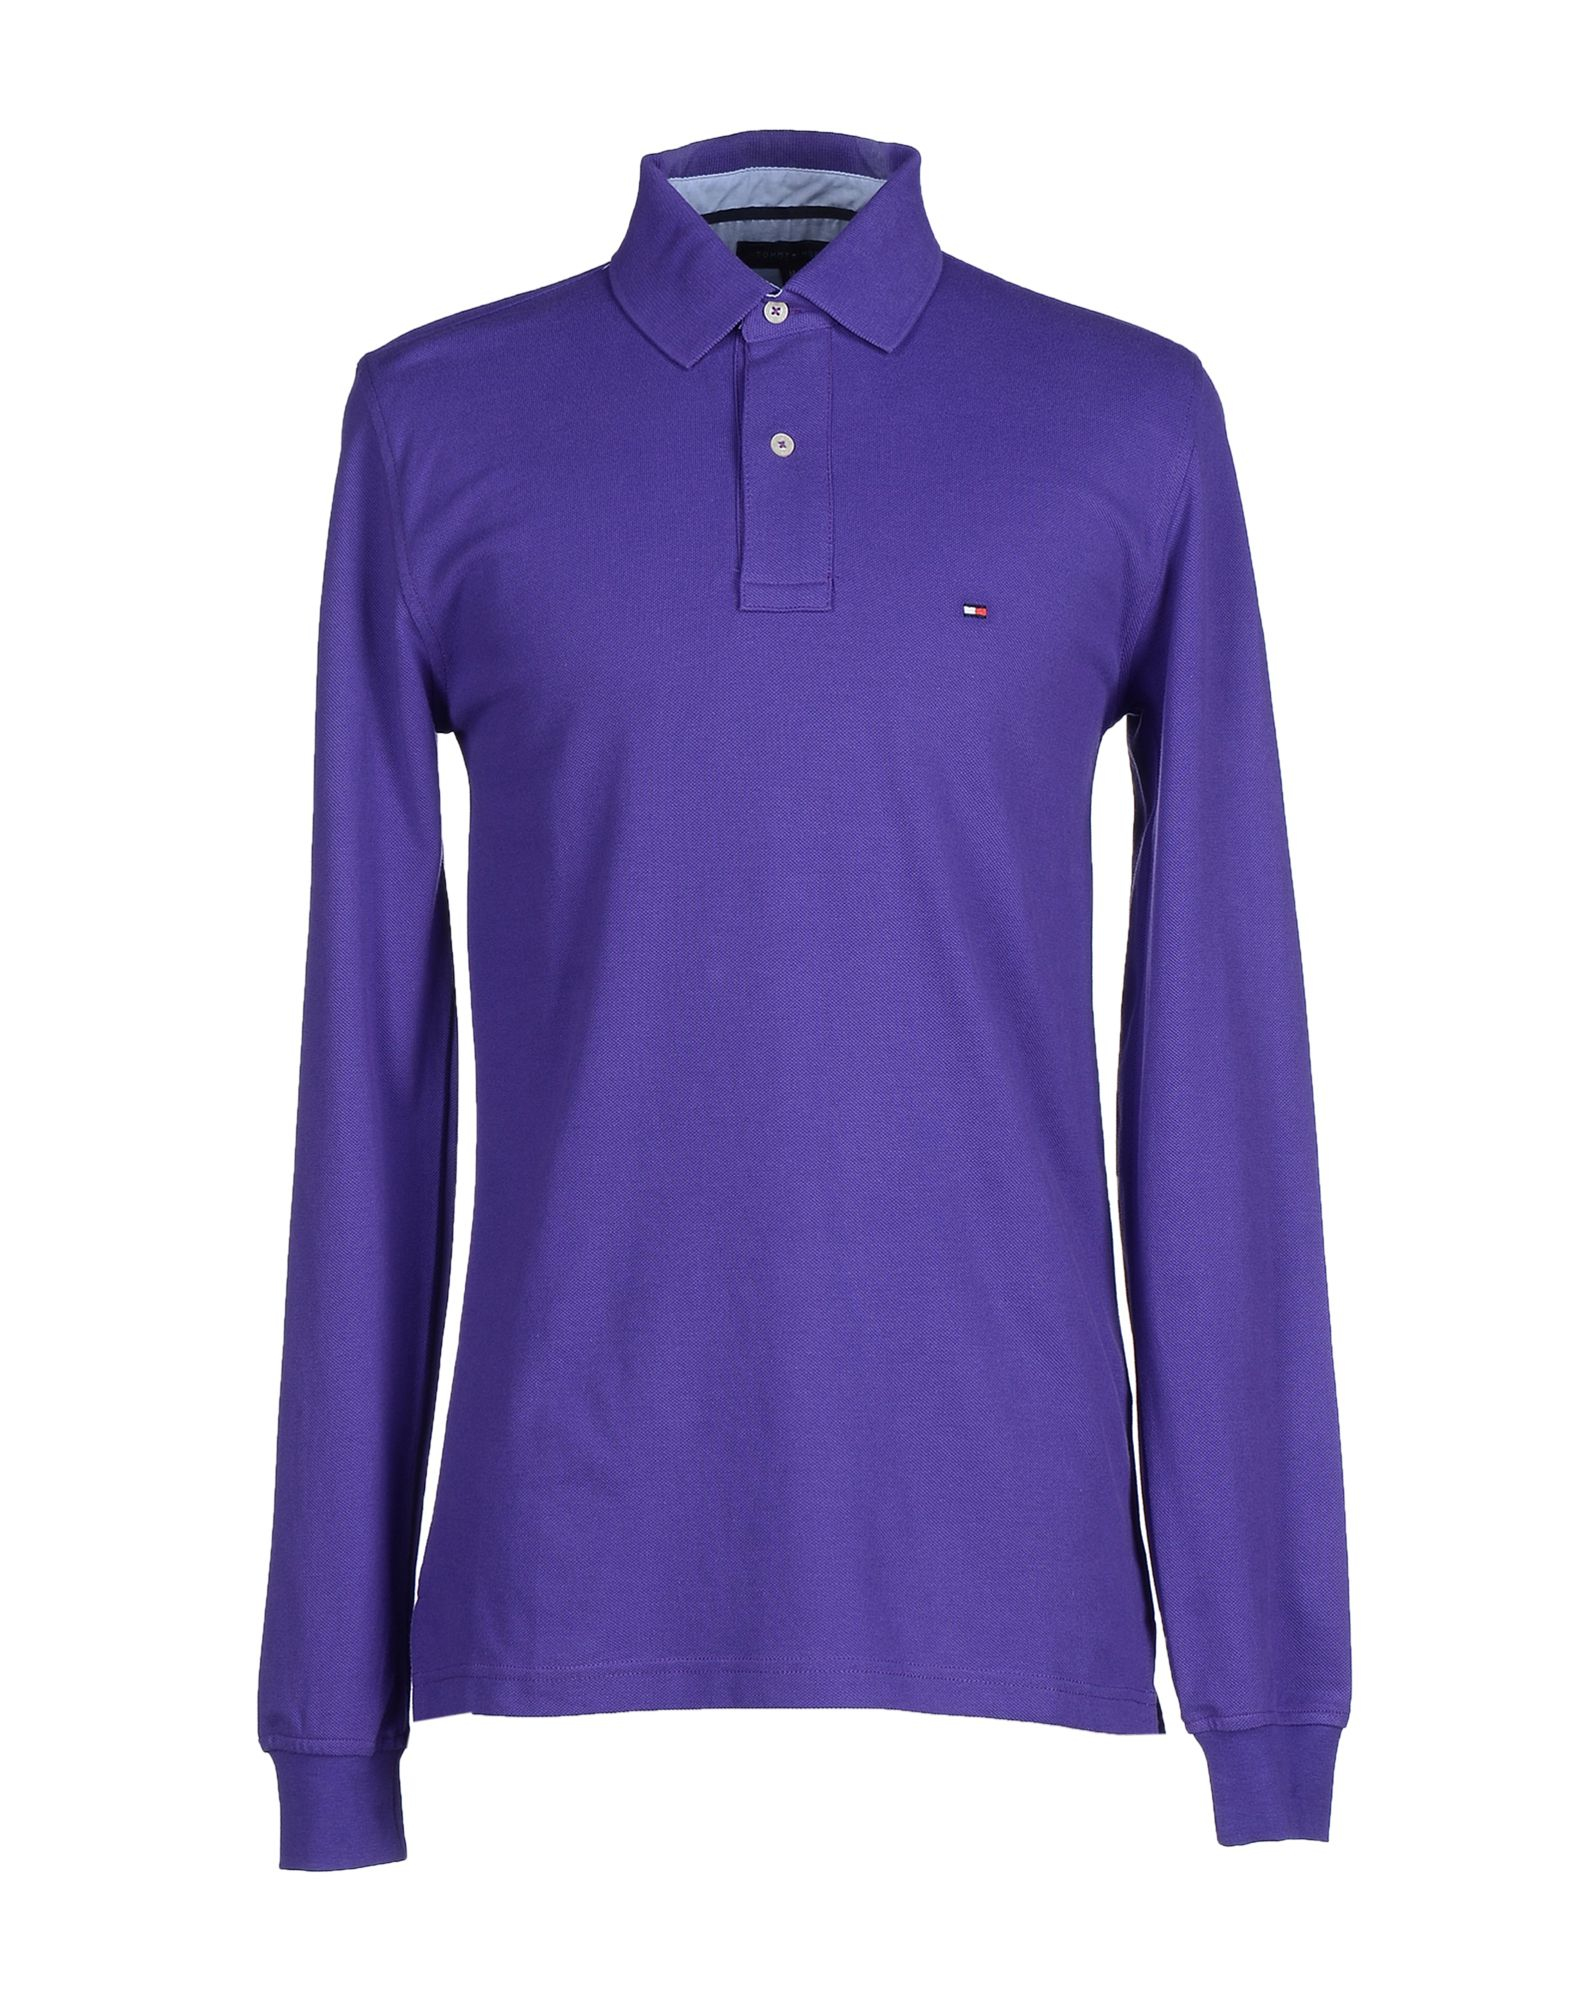 tommy hilfiger polo shirt in purple for men lyst. Black Bedroom Furniture Sets. Home Design Ideas